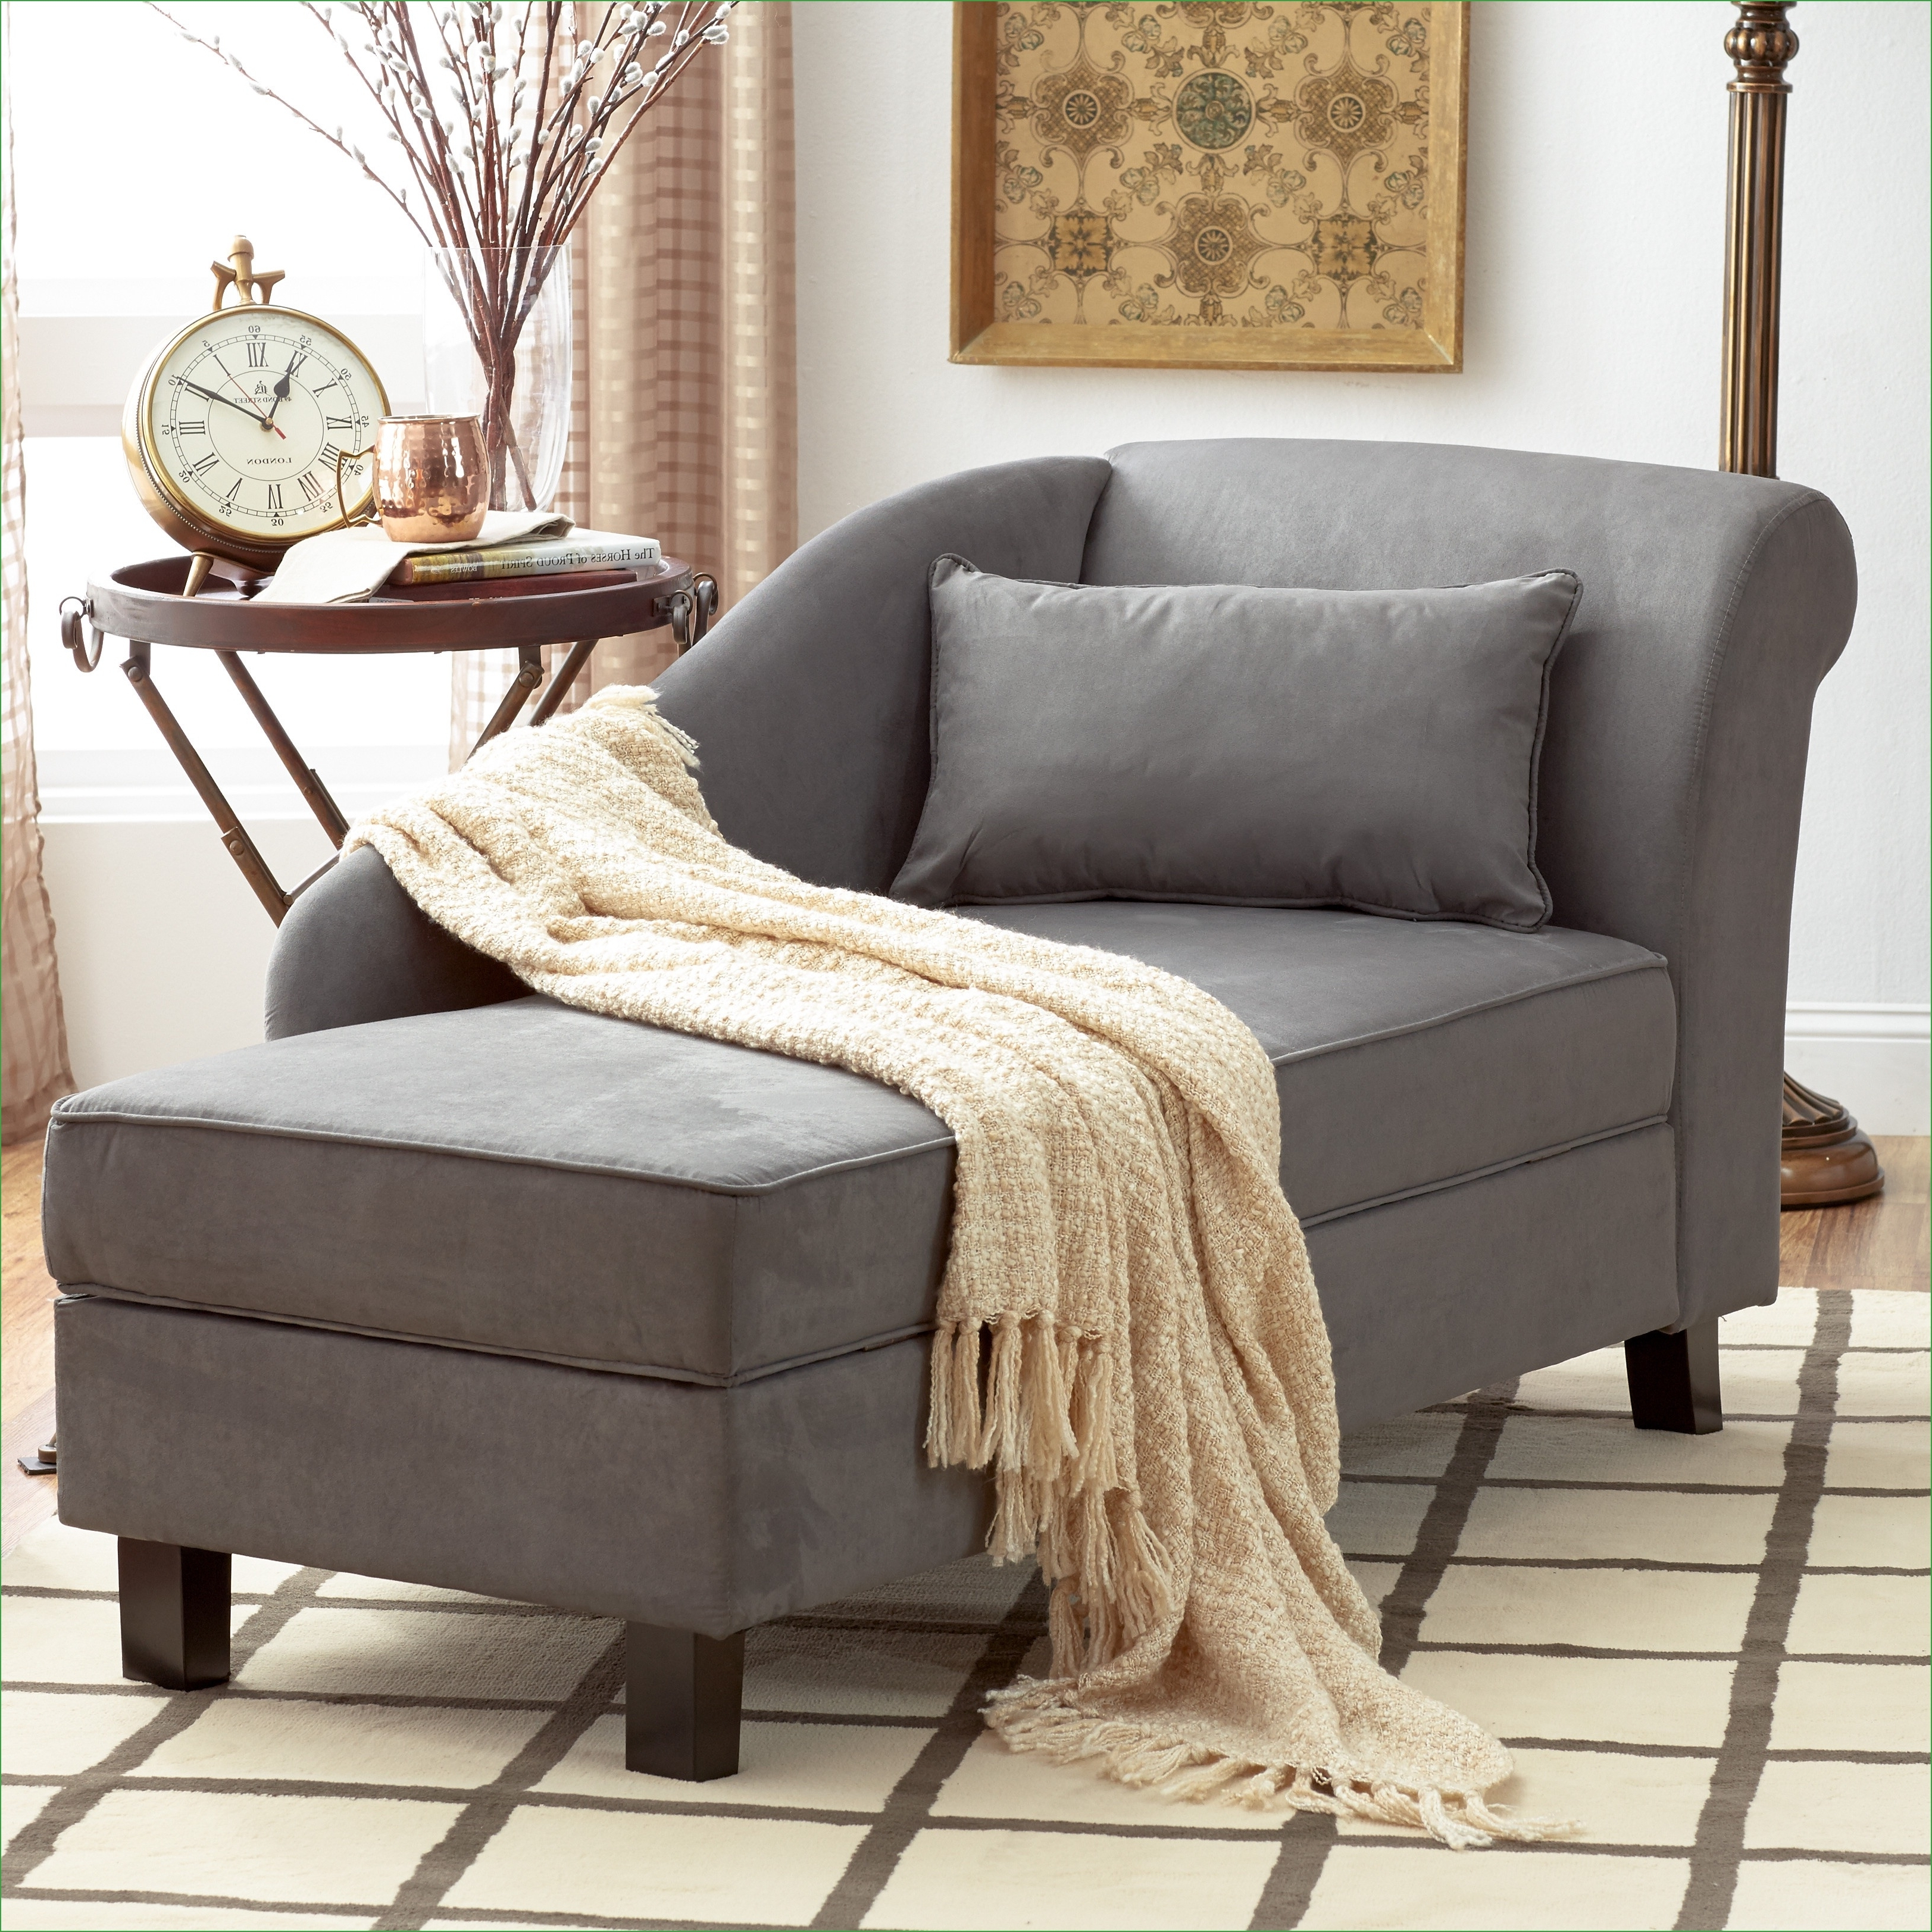 Lounge Chair For Small Room • Lounge Chairs Ideas Regarding Well Known Chaise Lounge Chairs For Small Spaces (View 7 of 15)